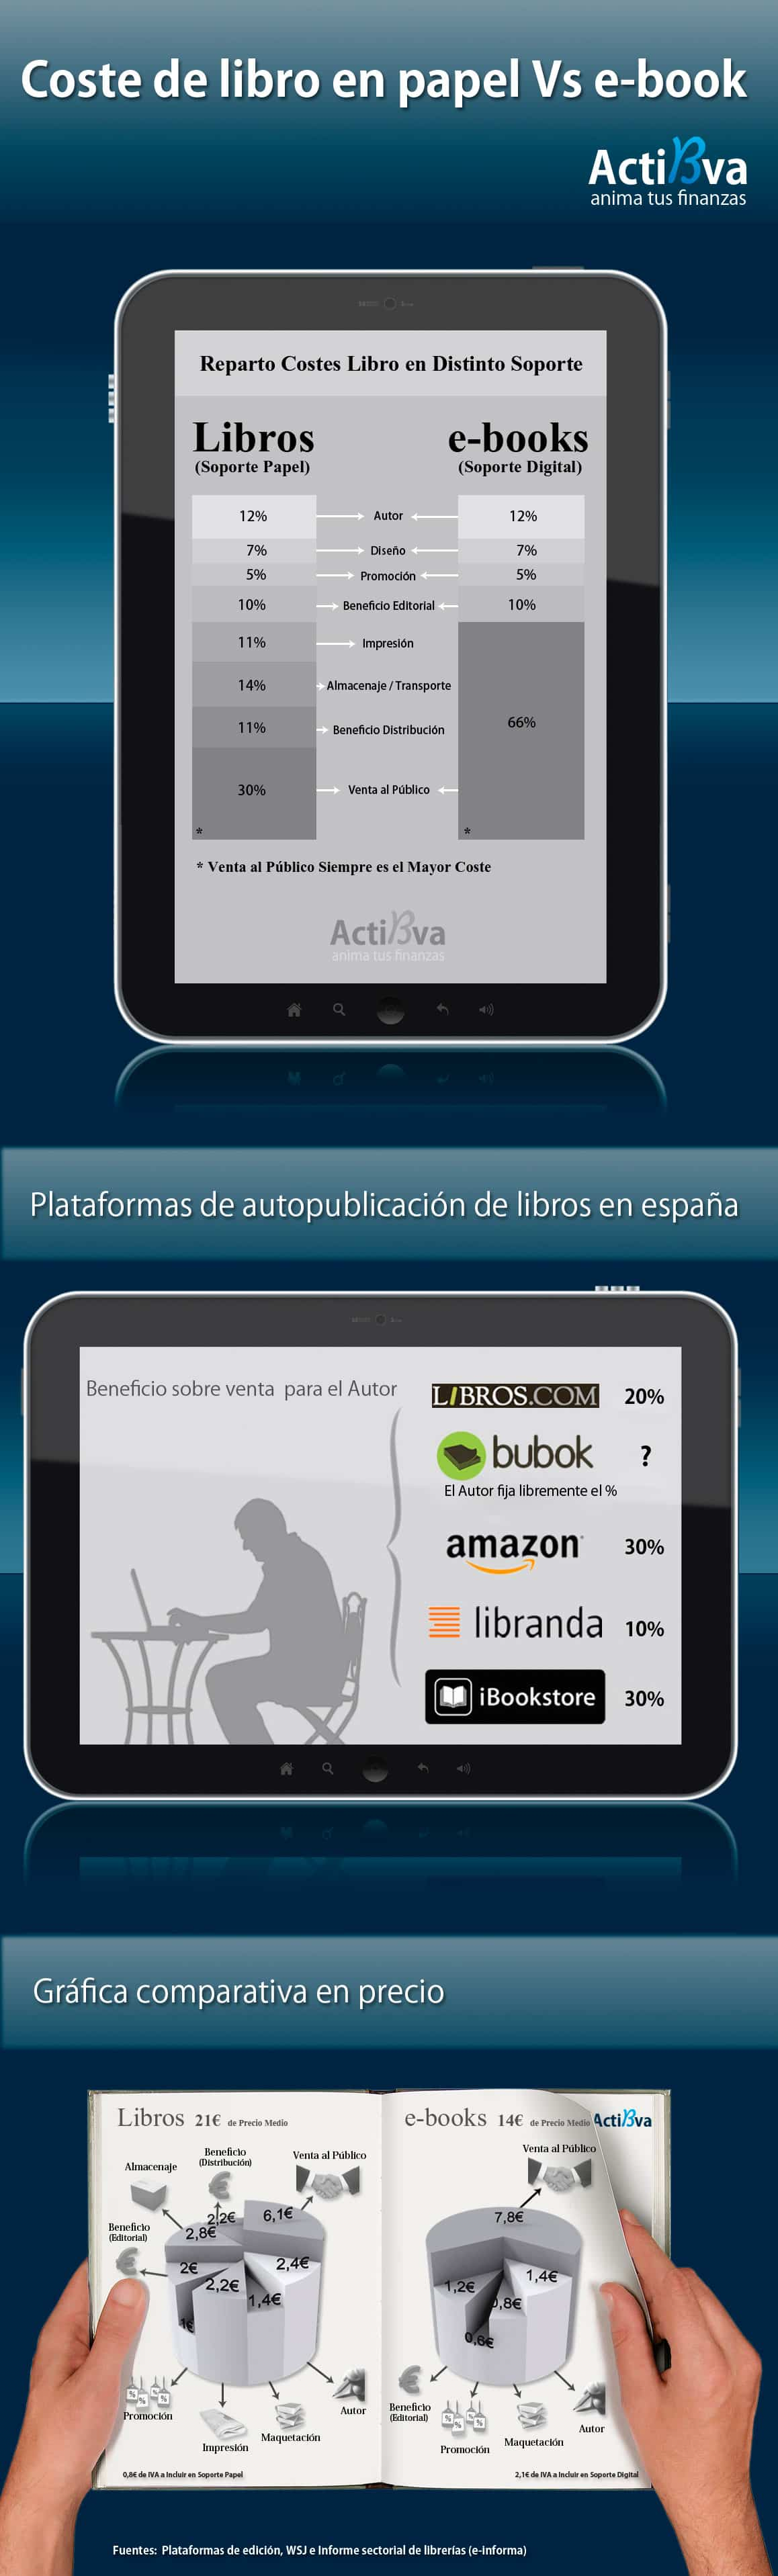 Descarga De Libros Electronicos Costes De Libros En Papel Vs Ebooks Infografías